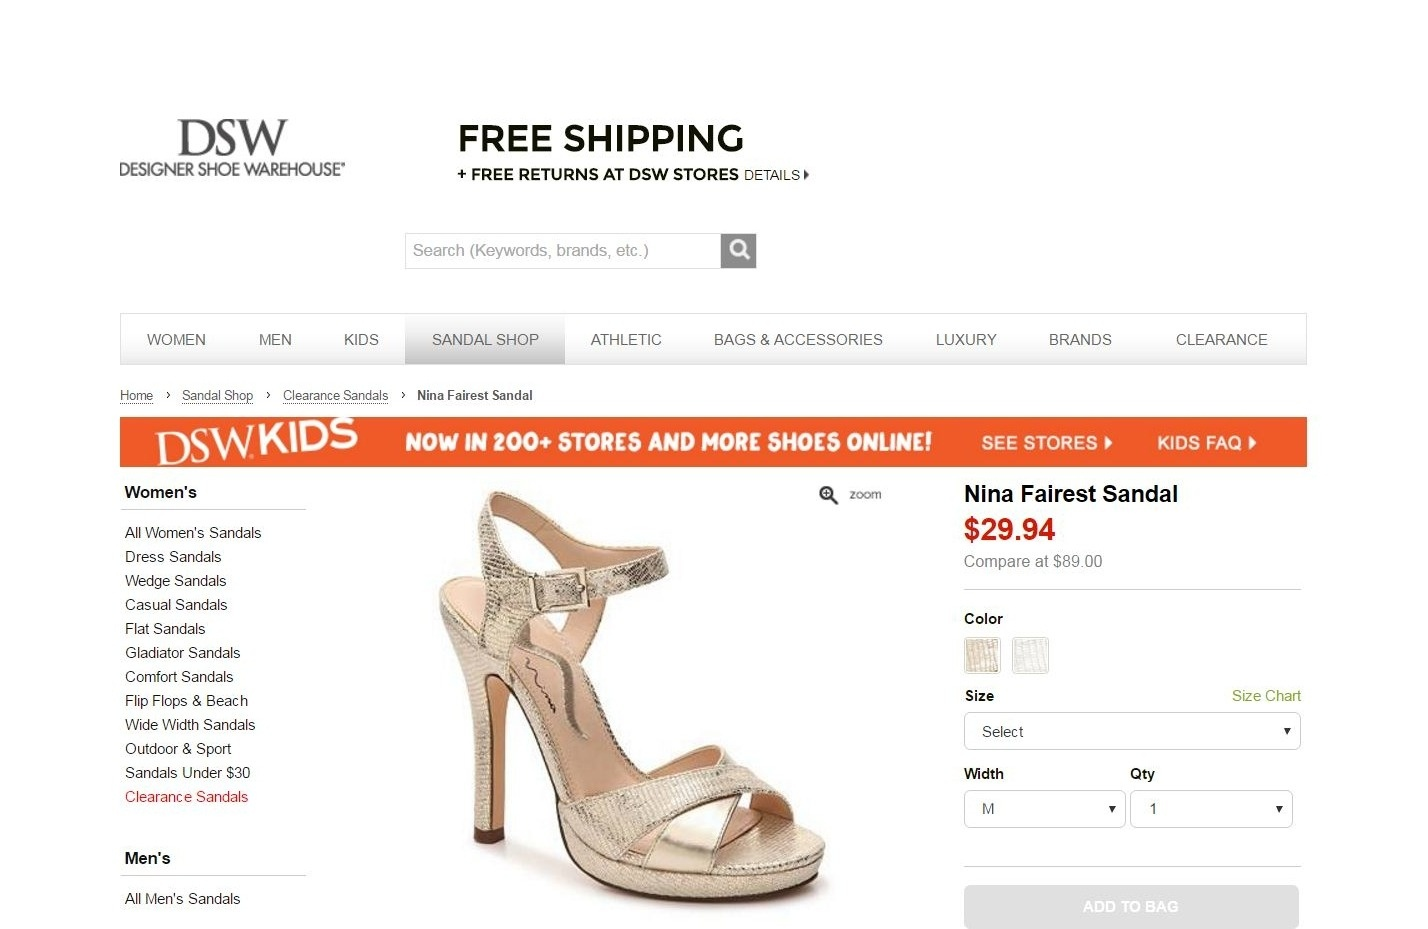 Dsw Designer Shoe Warehouse Coupons : Outdoor Playhouse Deals - Free Printable Coupons For Dsw Shoes